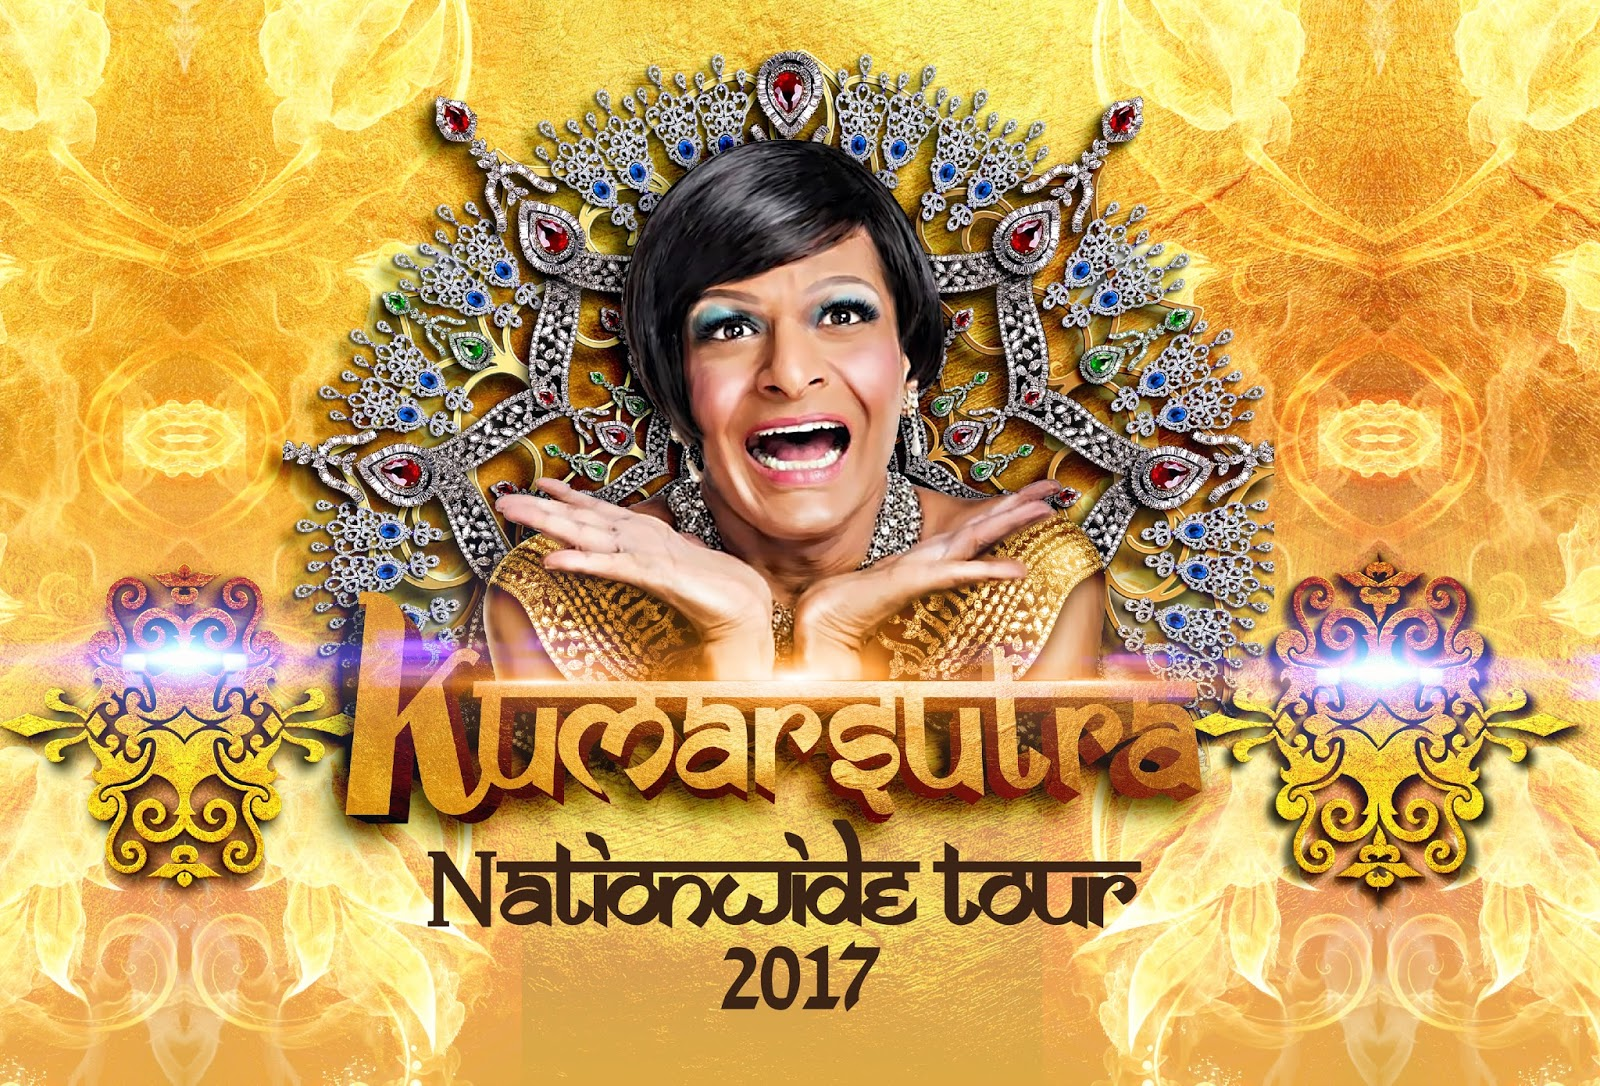 Singapore's hilarious drag queen is coming to Malaysia for a nationwide tour